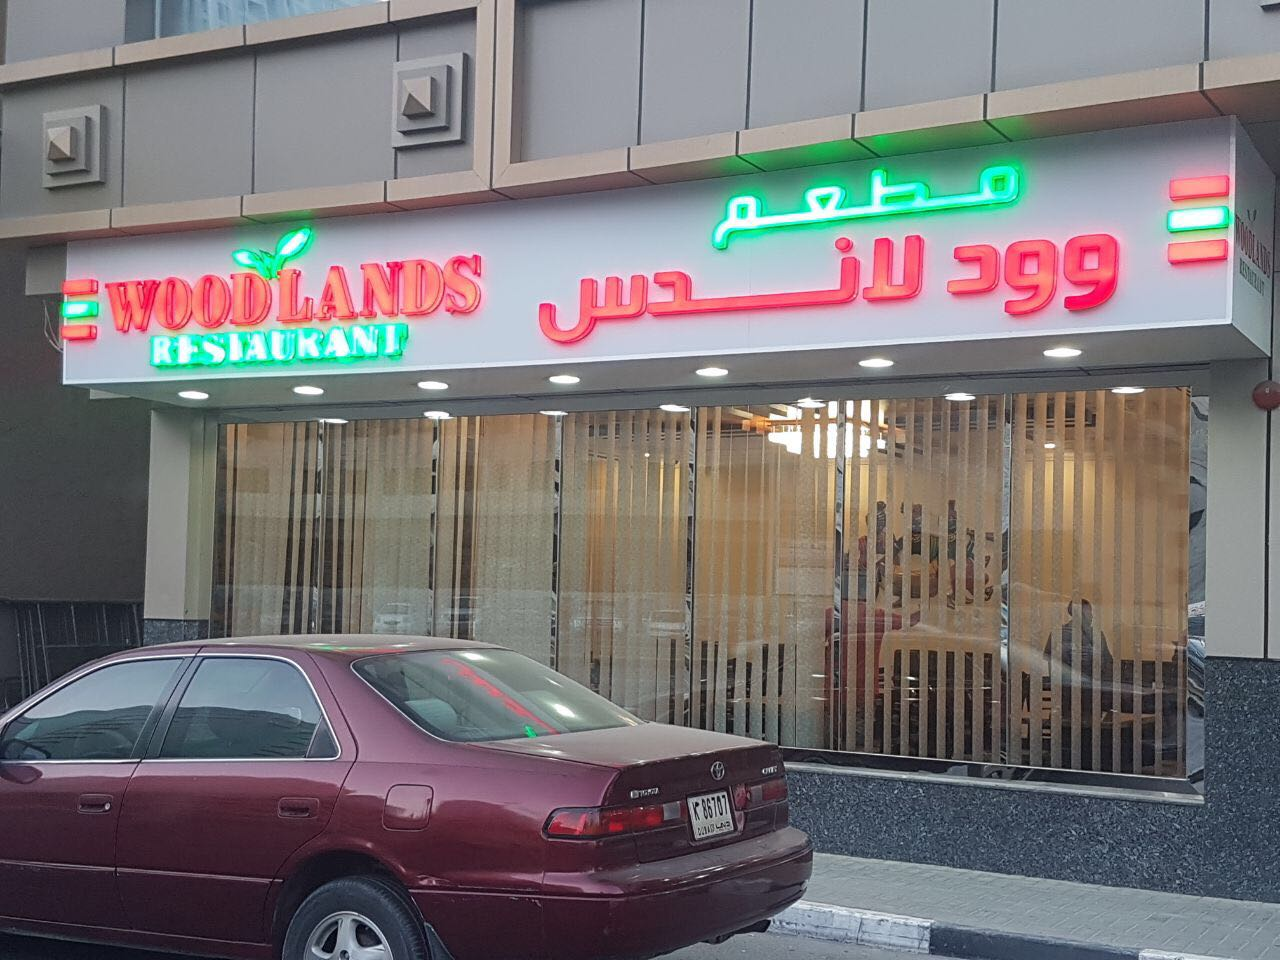 MANGALUR'S WOODLANDS RESTAURANT RE-LAUNCHED IN SHARJAH